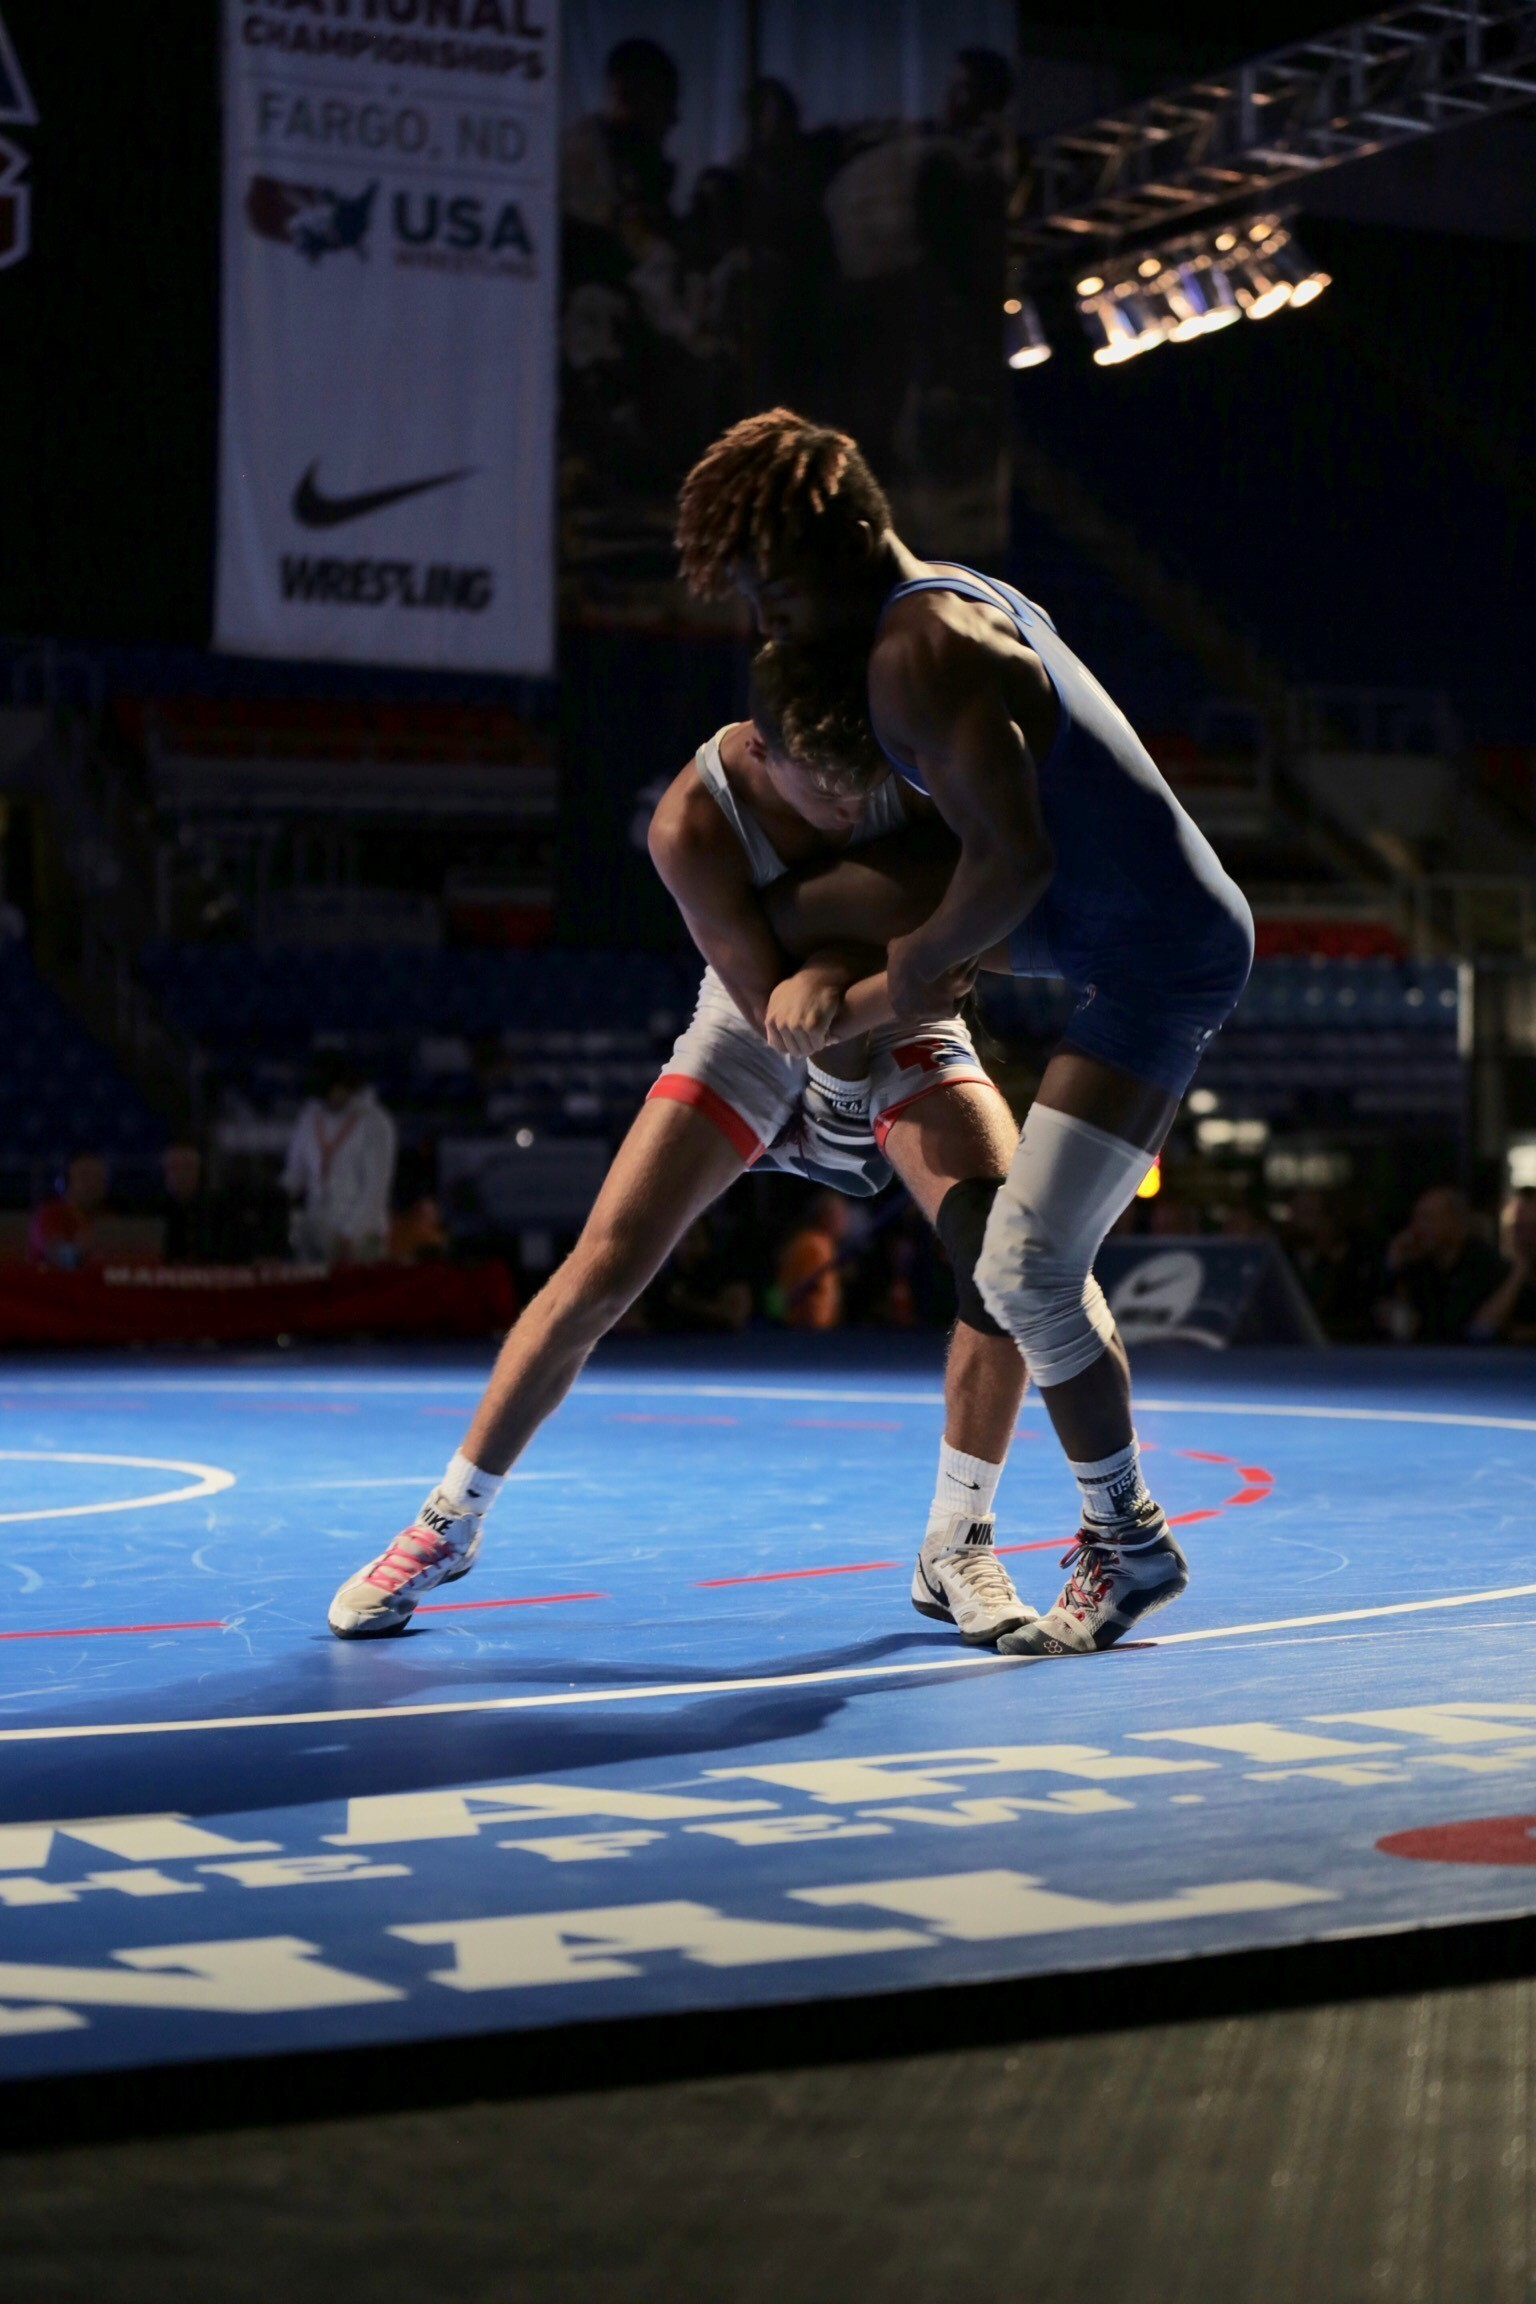 Anthony Molton from Team Illinois wrestles and wins against Jakason Burks from Team Nebraska during the US Marine Corps Cadet and Junior National Championships in Fargo, North Dakota, July 16, 2019. USA Wrestling is the national governing body for the sport of wrestling and is the central organization that coordinates amateur wrestling programs in the nation and works to create interest and participation in these programs. The Marine Corps began partnering with USAW in 2017 to become intimately involved with the sport of wrestling through event activations, event branding and brand exposure through media. By partnering specifically with USAW, the Marine Corps reaches a broad cross-section of high school and collegiate-aged wrestlers as well as an ever-growing influencer network of coaches, referees, wrestling alumni and parents.